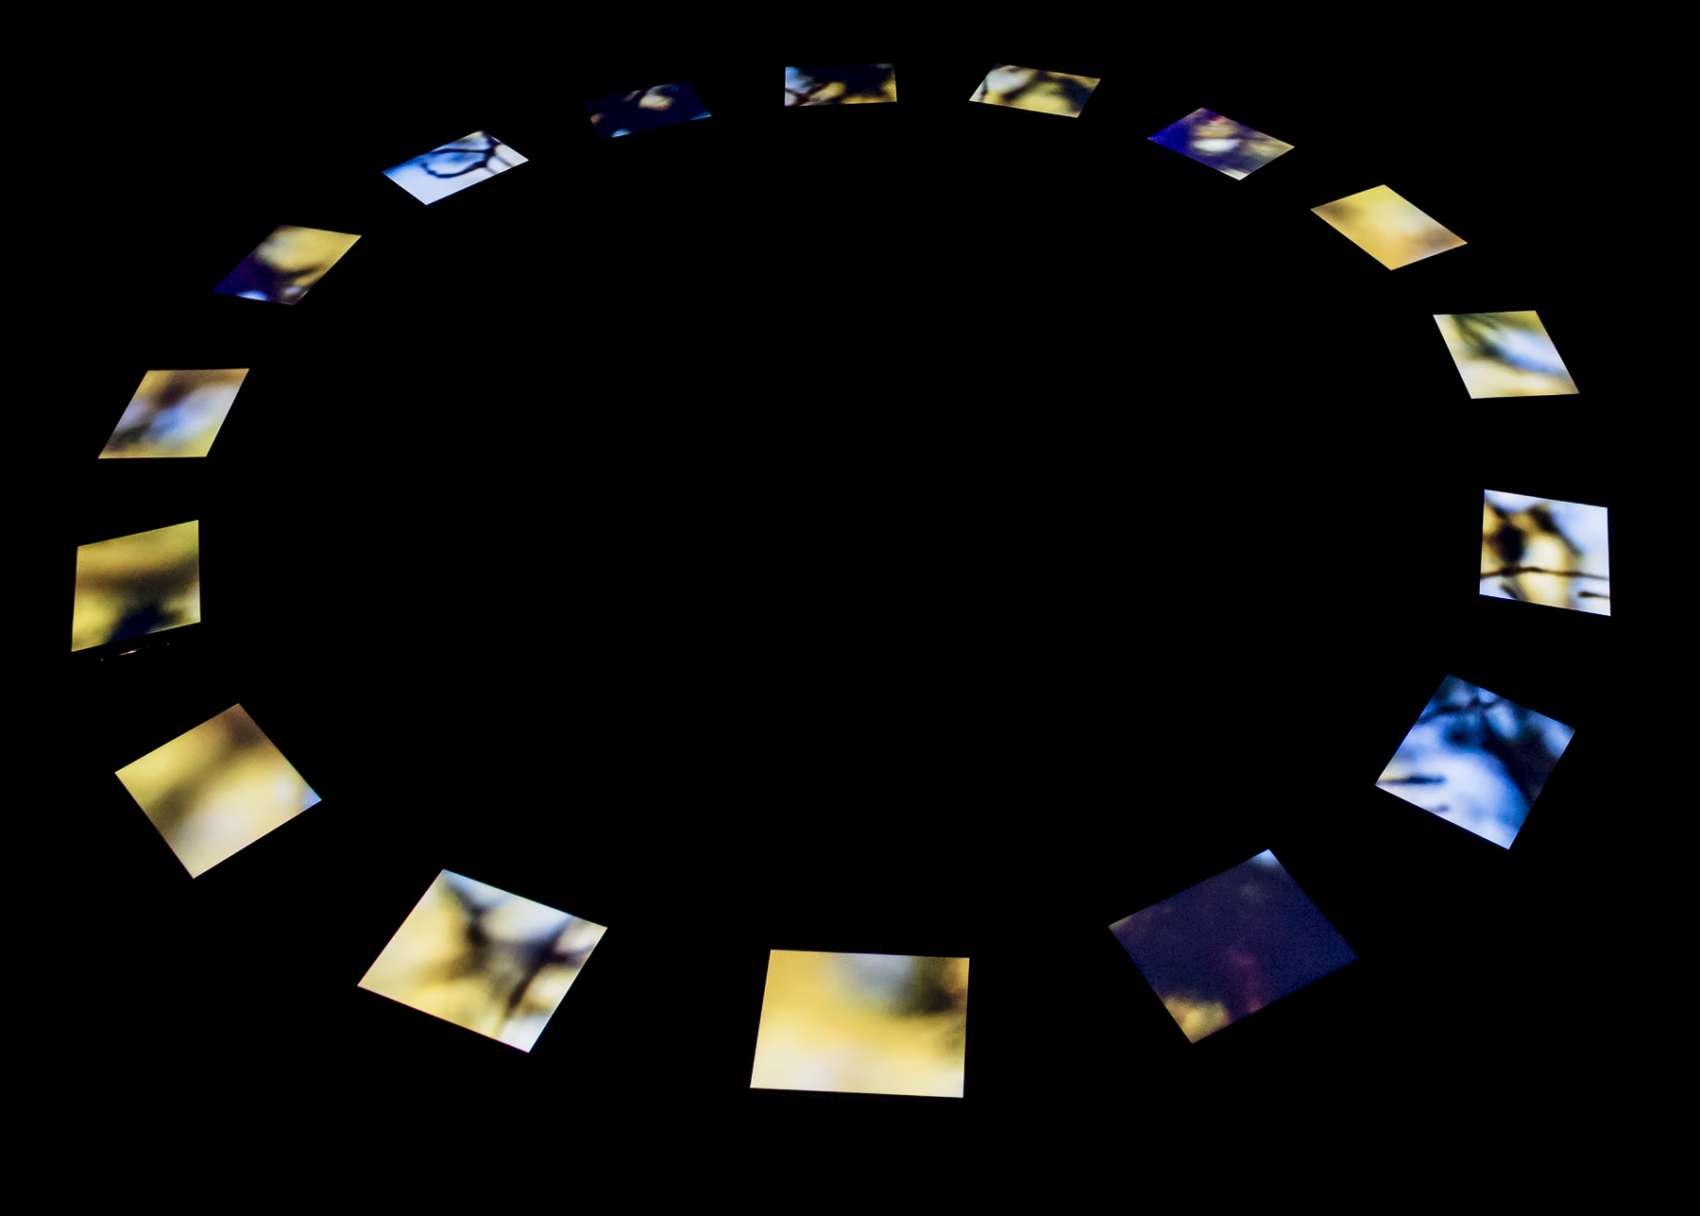 Black image with brightly lit iPad screens in a circle